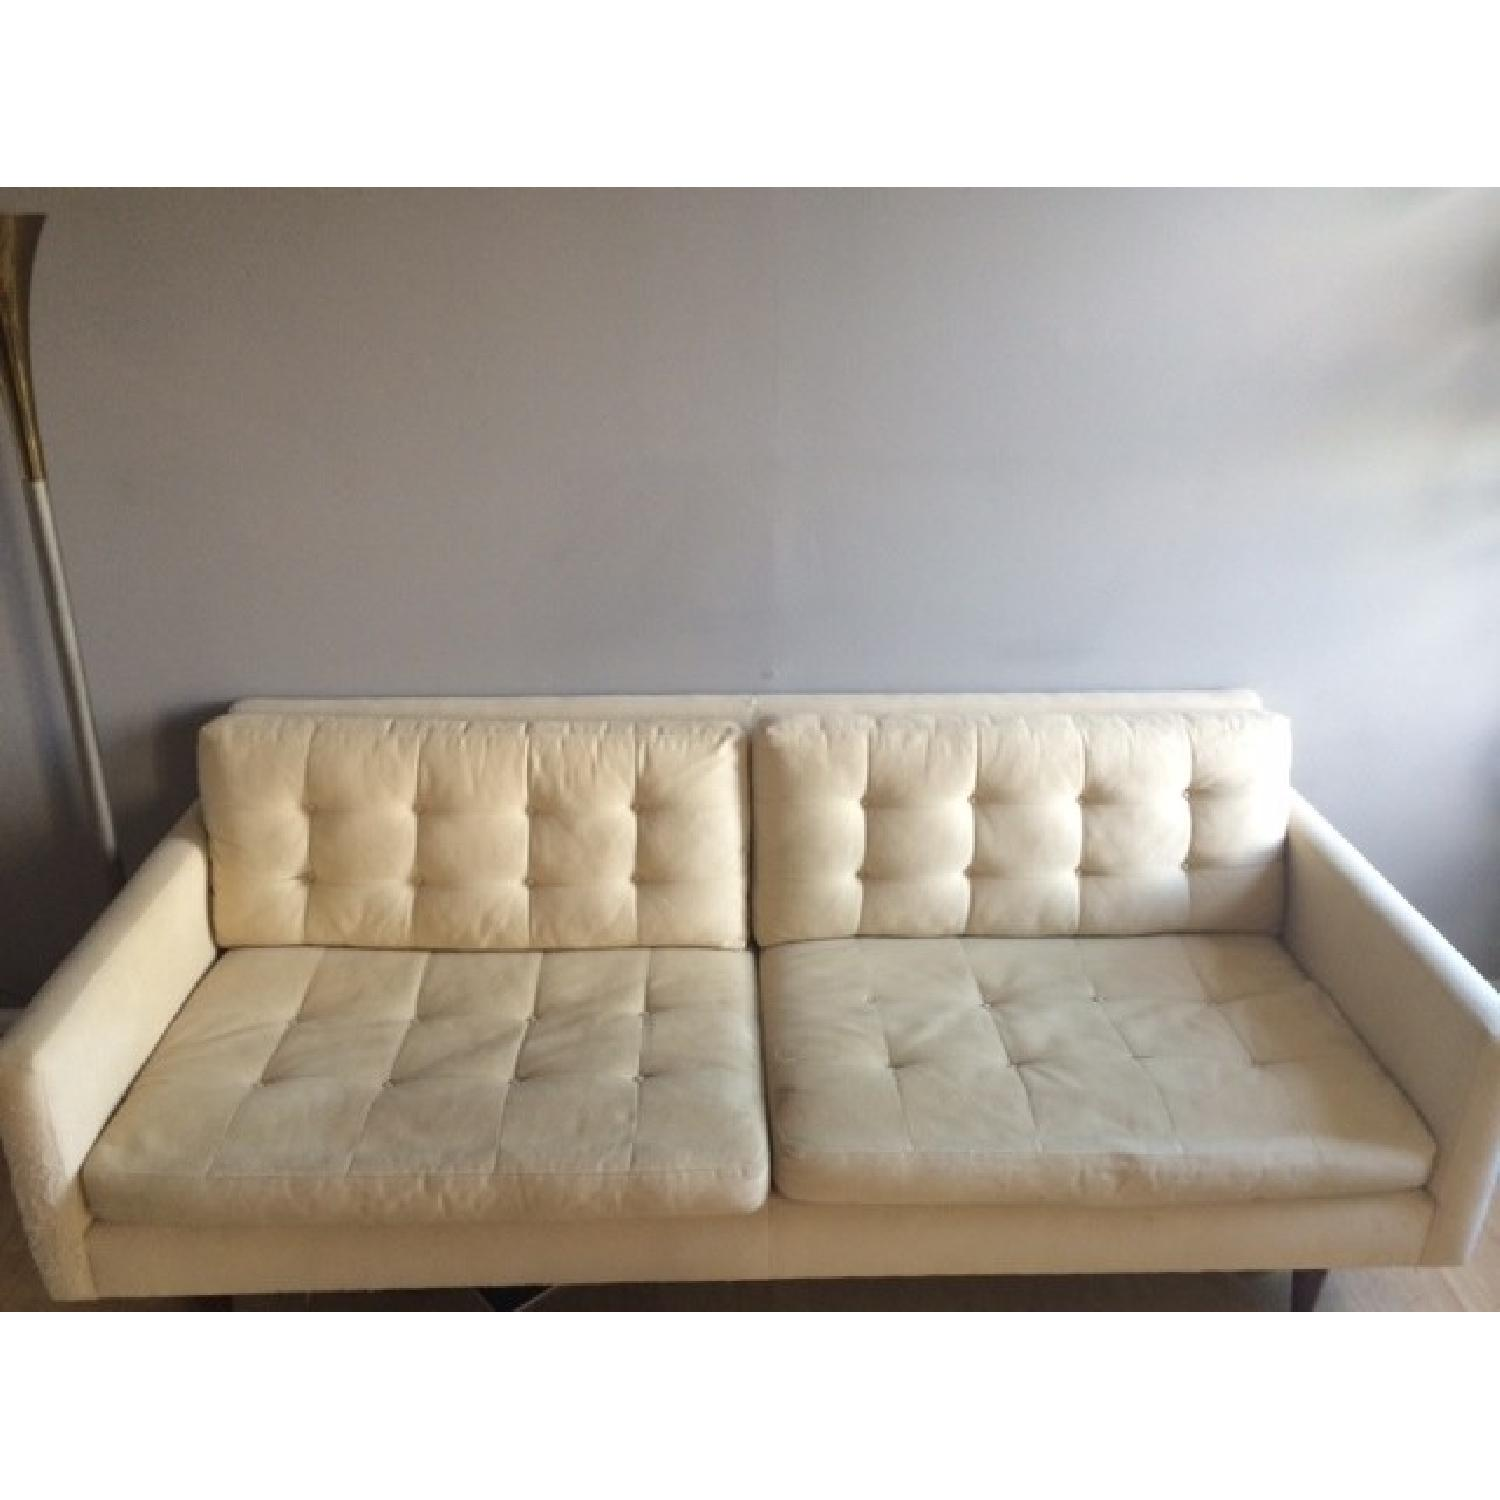 Crate & Barrel Petrie Sofa - image-2